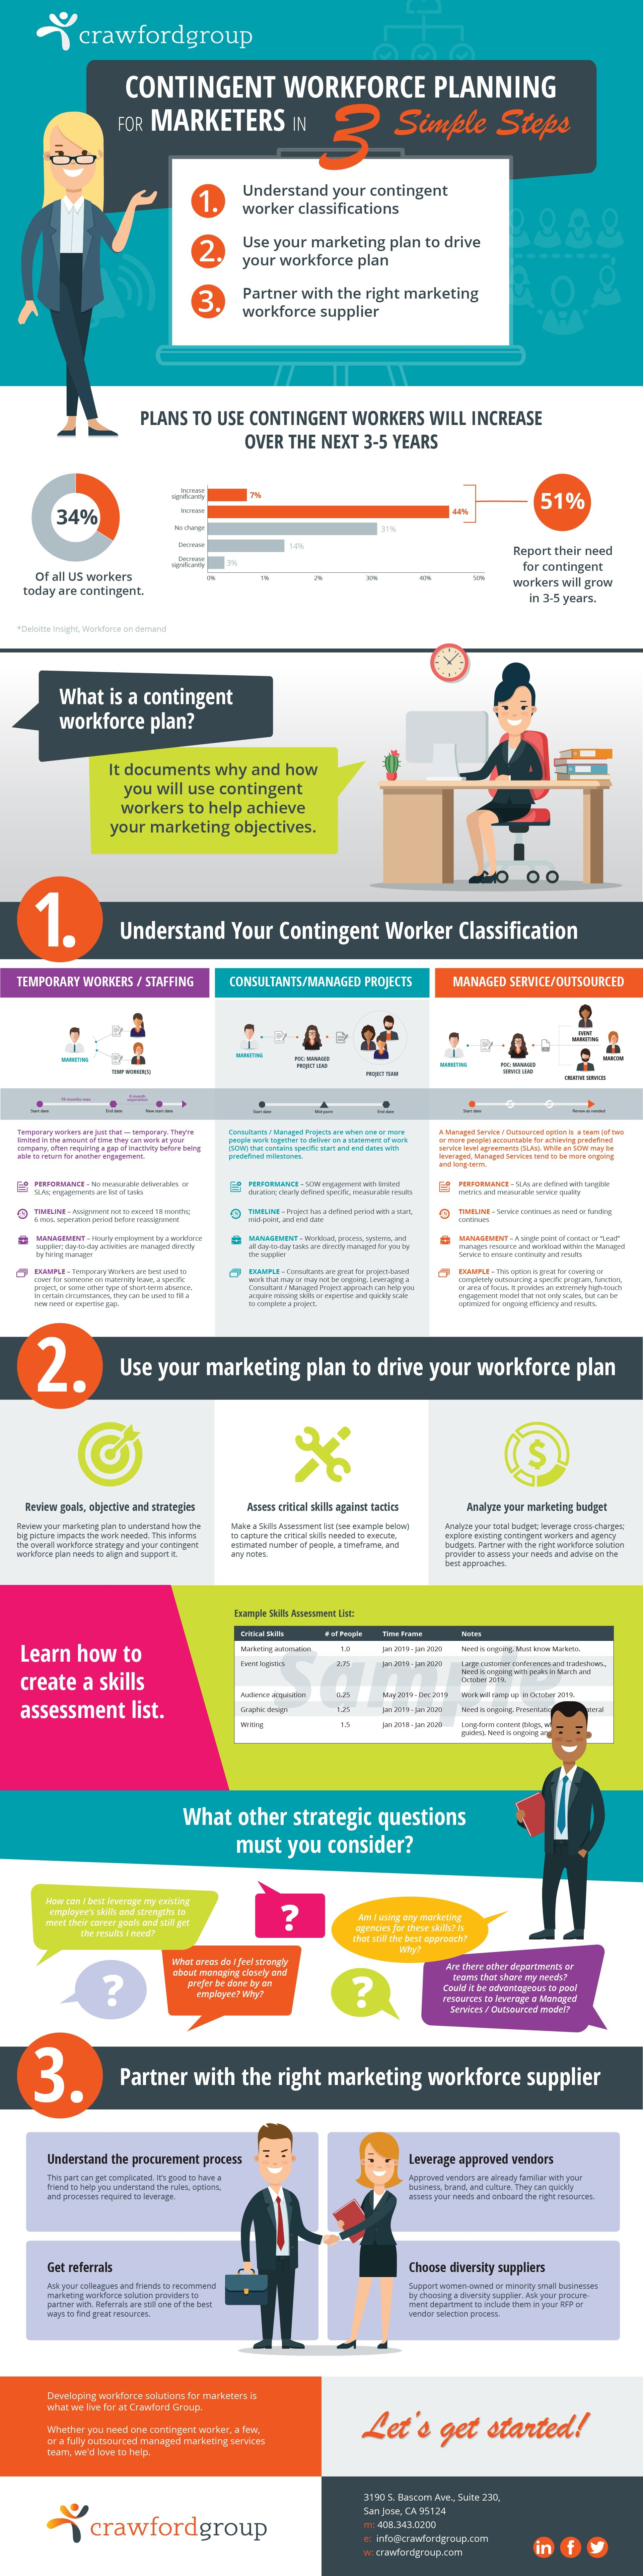 [Infographic] Contingent Workforce Planning 3 Steps